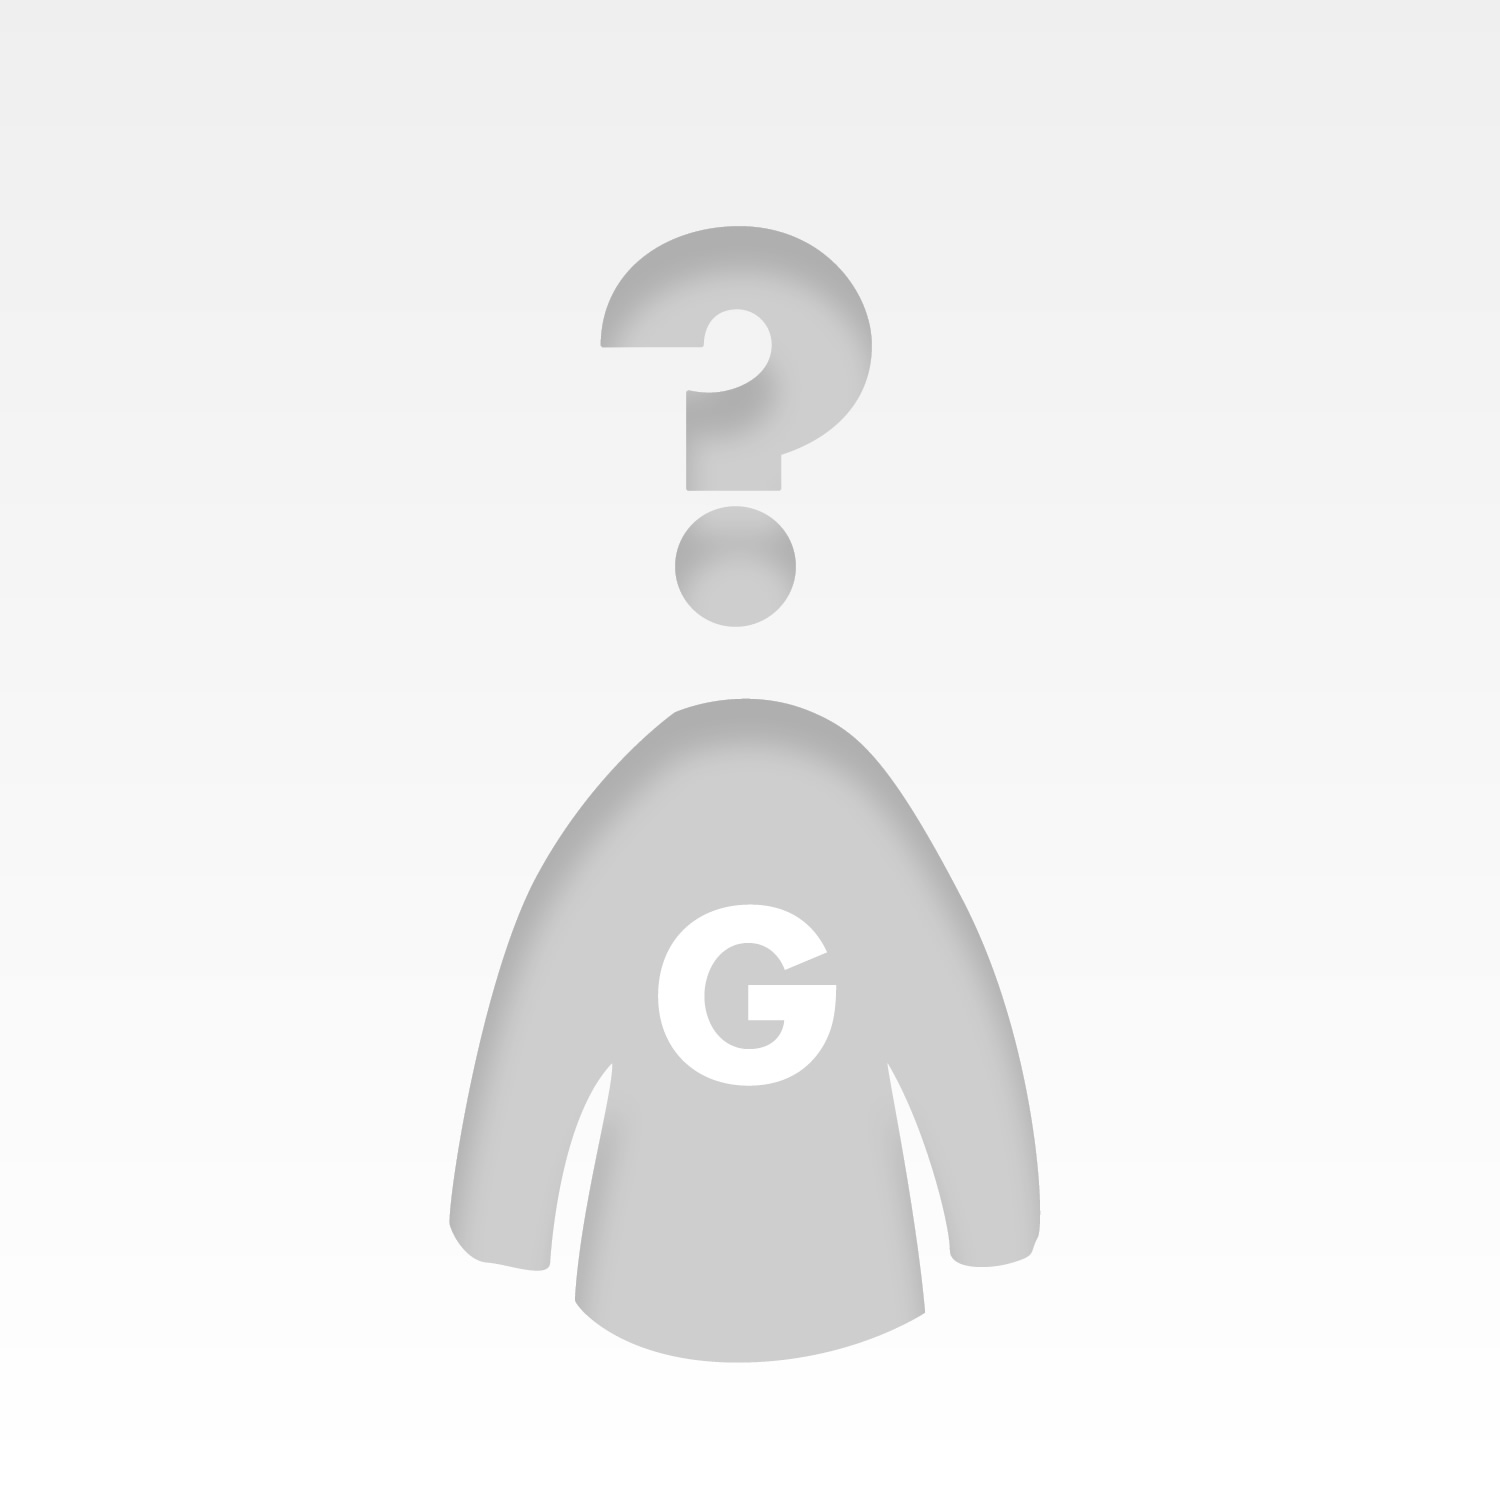 The s9g5ohf's avatar